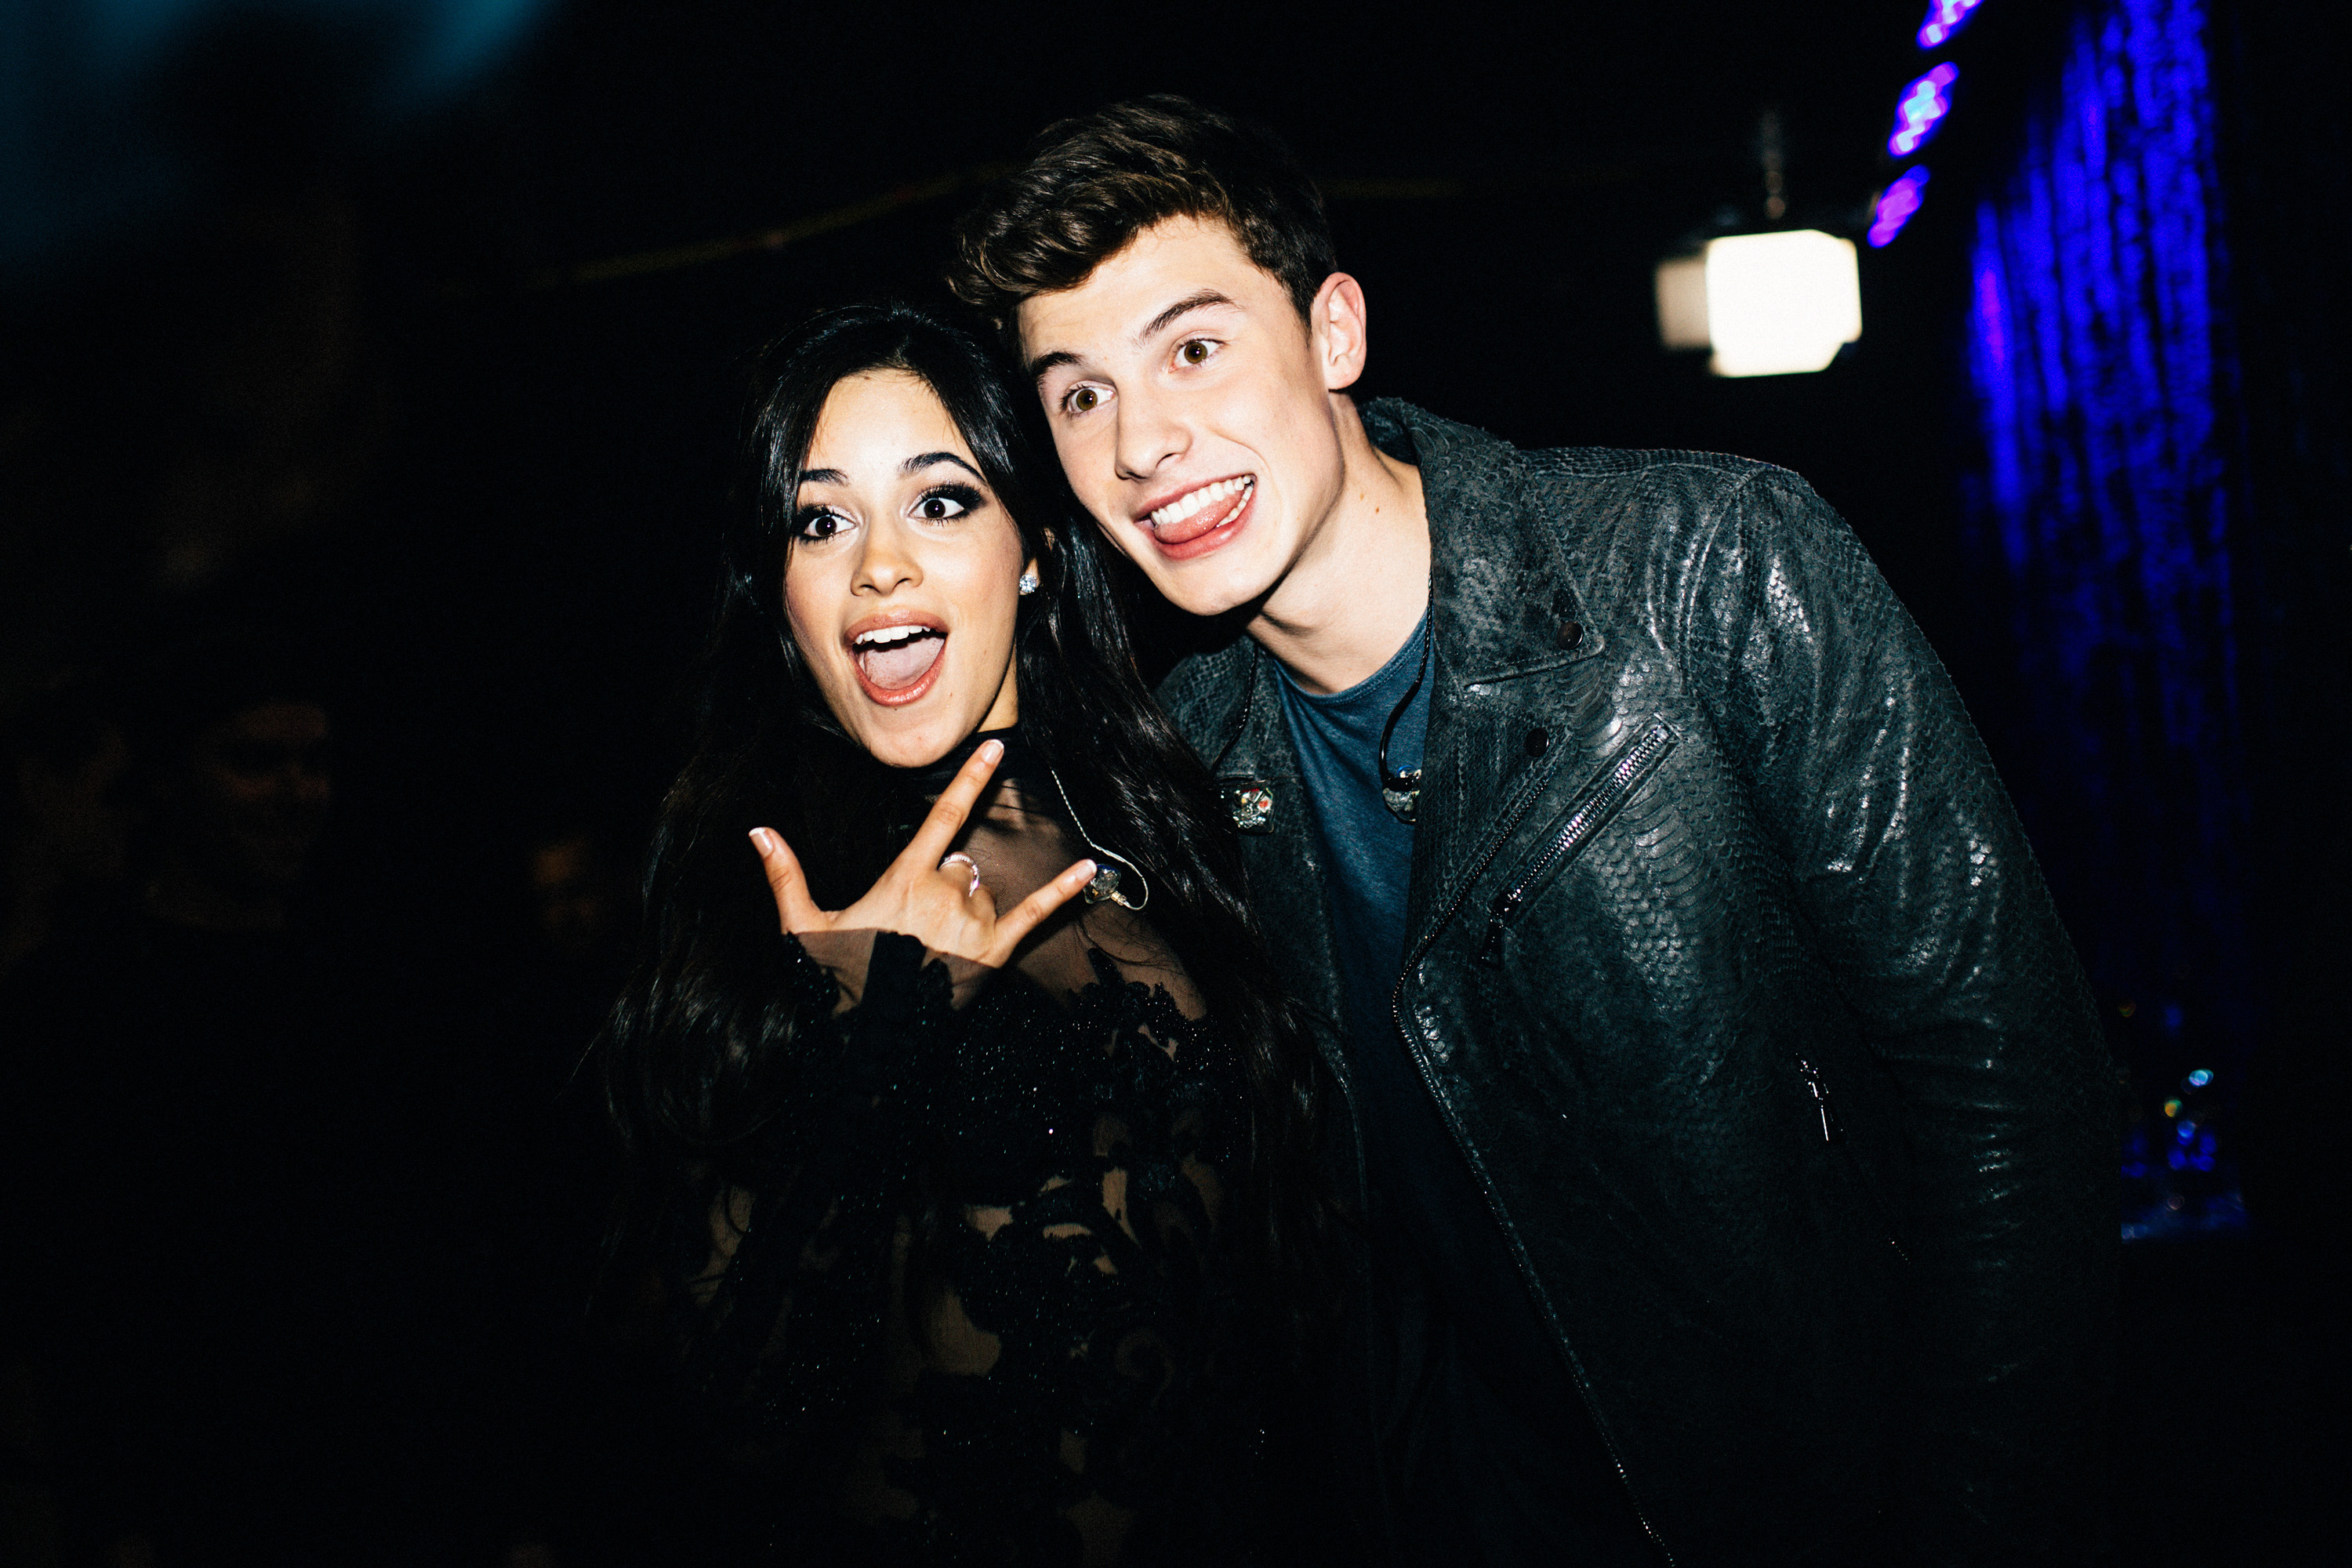 Camila Cabello Really, Really Wanted Shawn Mendes to Know She Was at His Concert